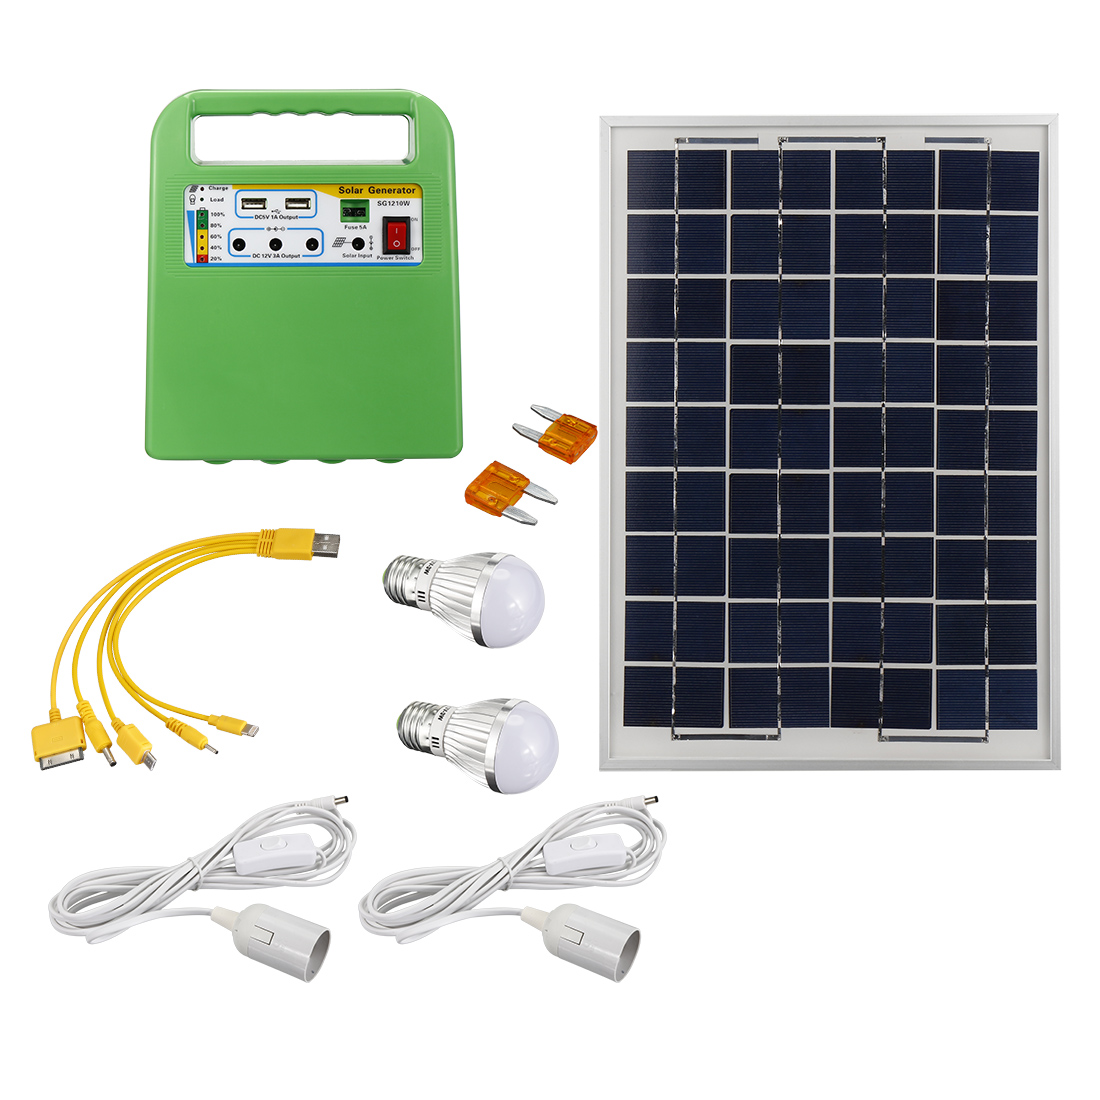 Portable Solar Panel Power Storage Generator LED Light USB Charger Home System